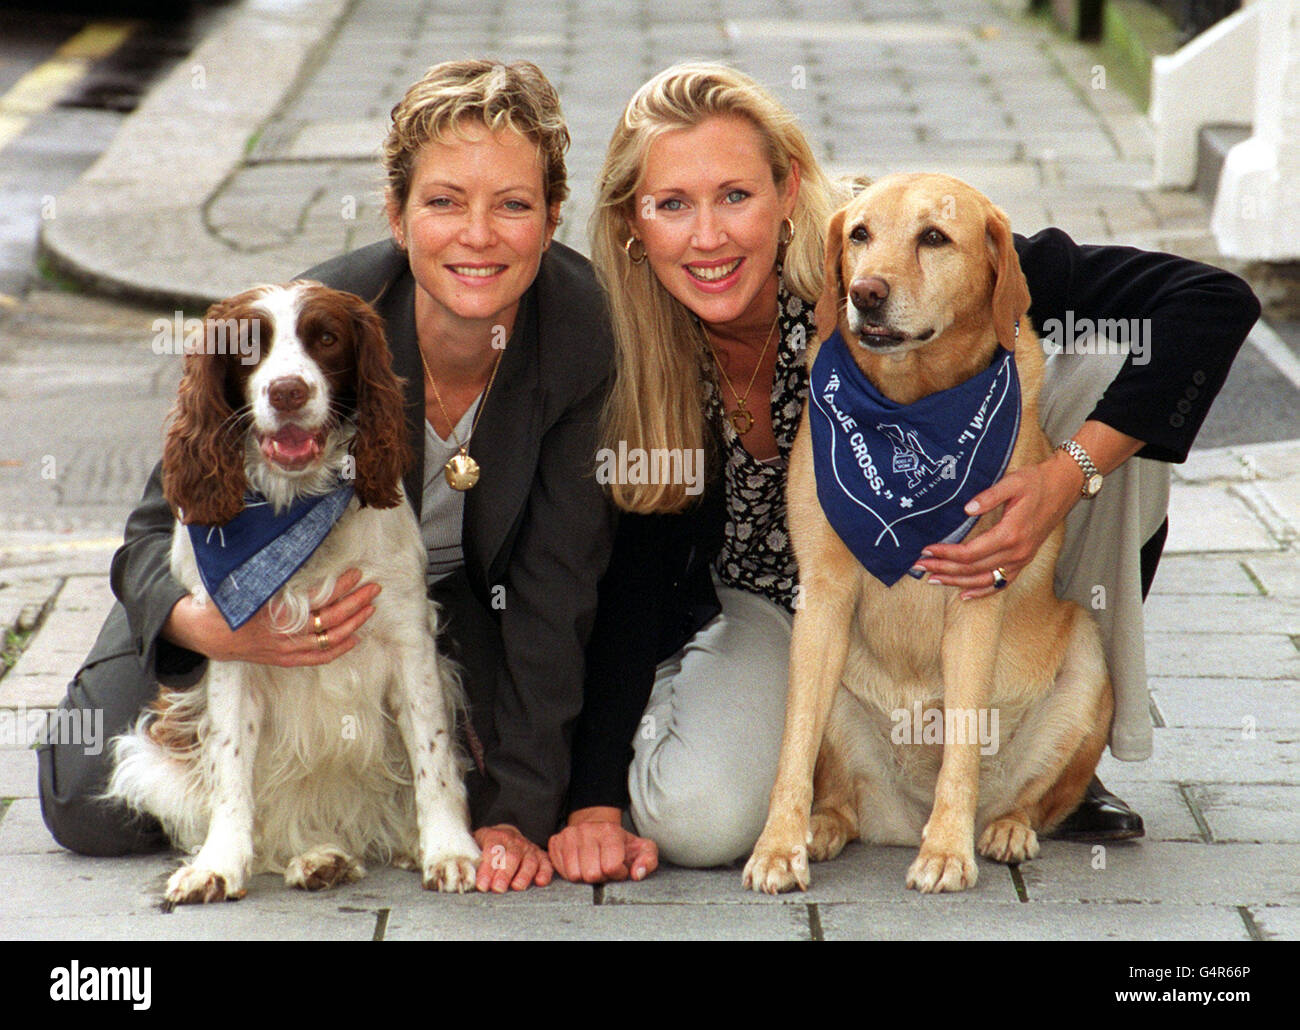 Dog to work day/Seagrove - Stock Image